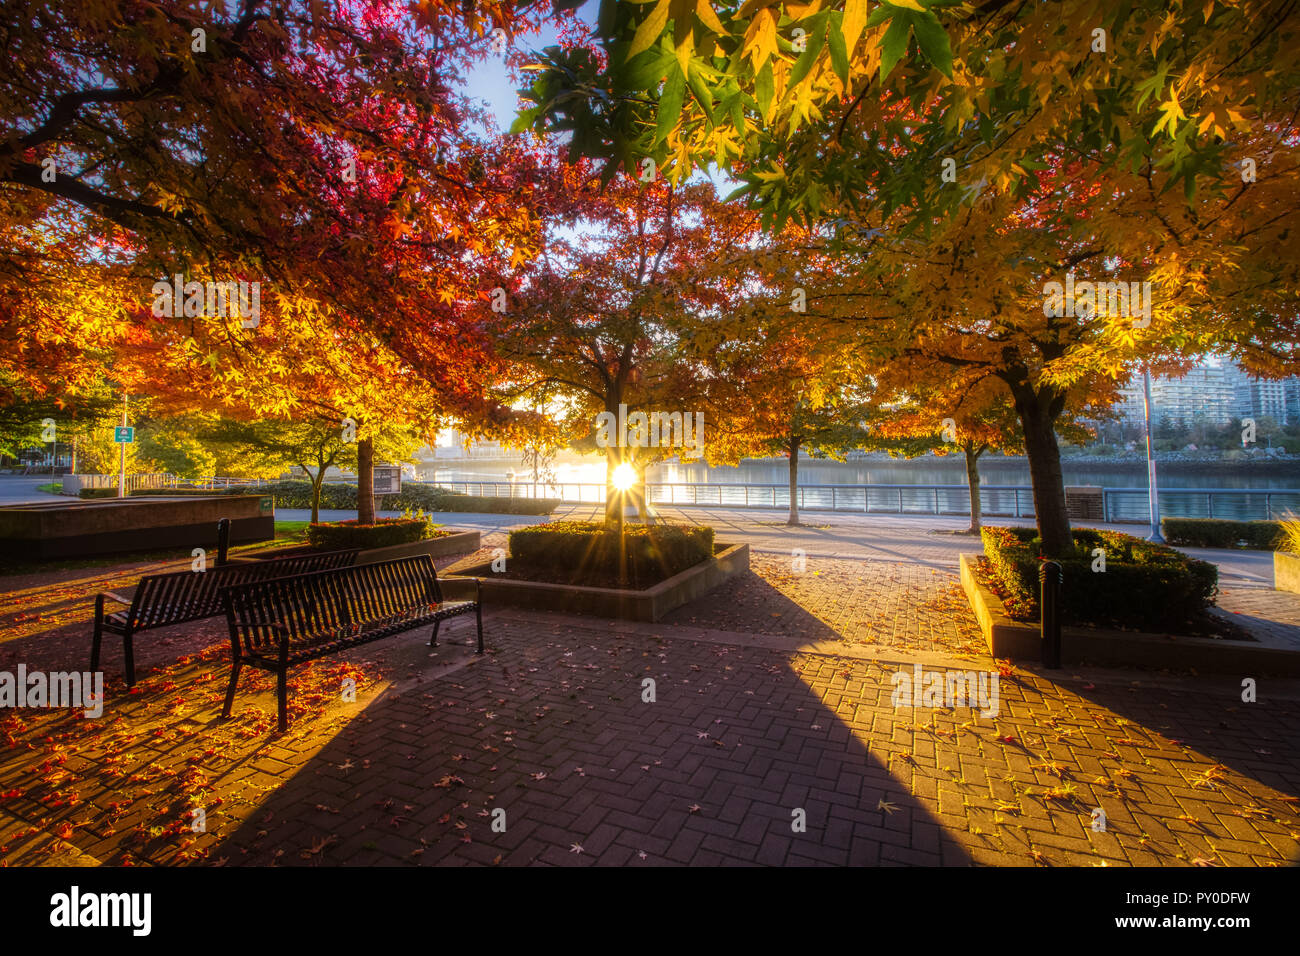 Stunning canopy of colorful trees in autumn at sunrise with long shadows cast across the ground & False Canopy Stock Photos u0026 False Canopy Stock Images - Alamy